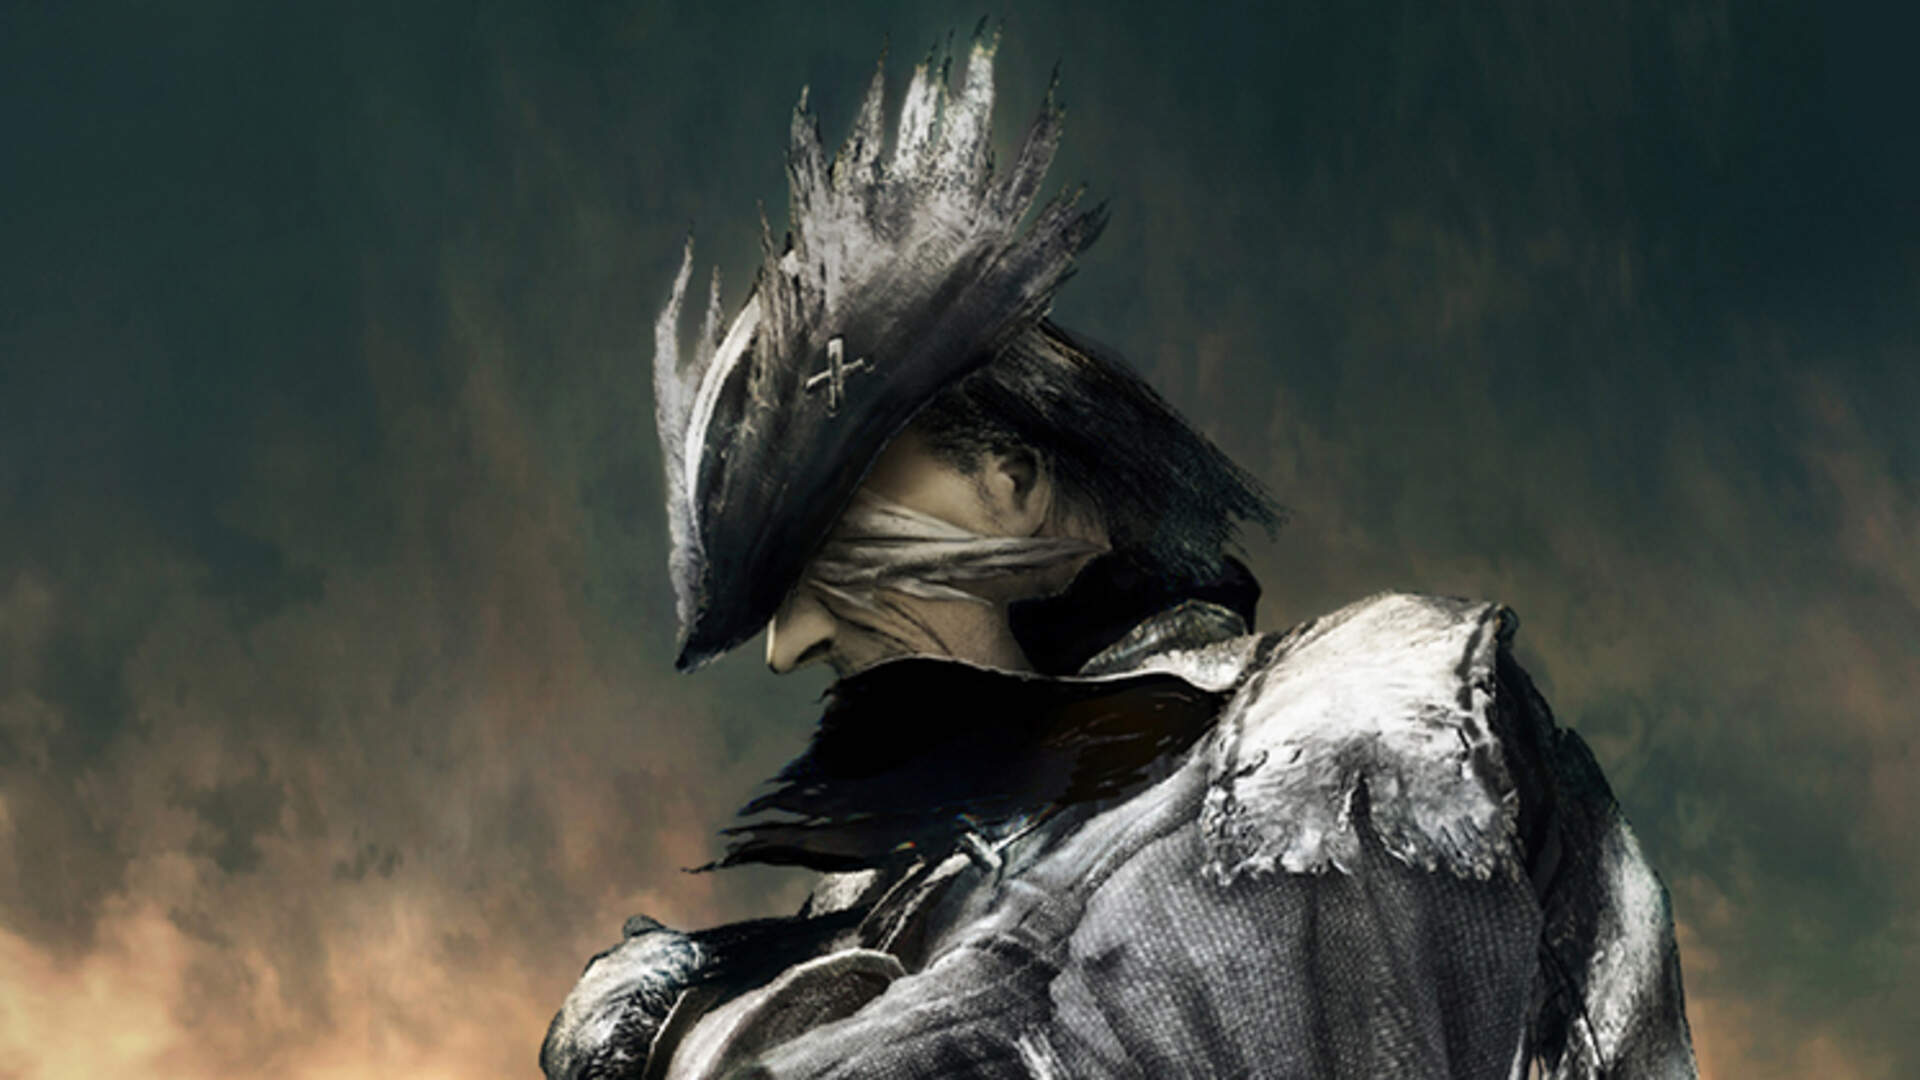 Bloodborne Chalice Dungeons Guide - Complete Chalice Dungeons Explanation, How to Obtain New Chalices